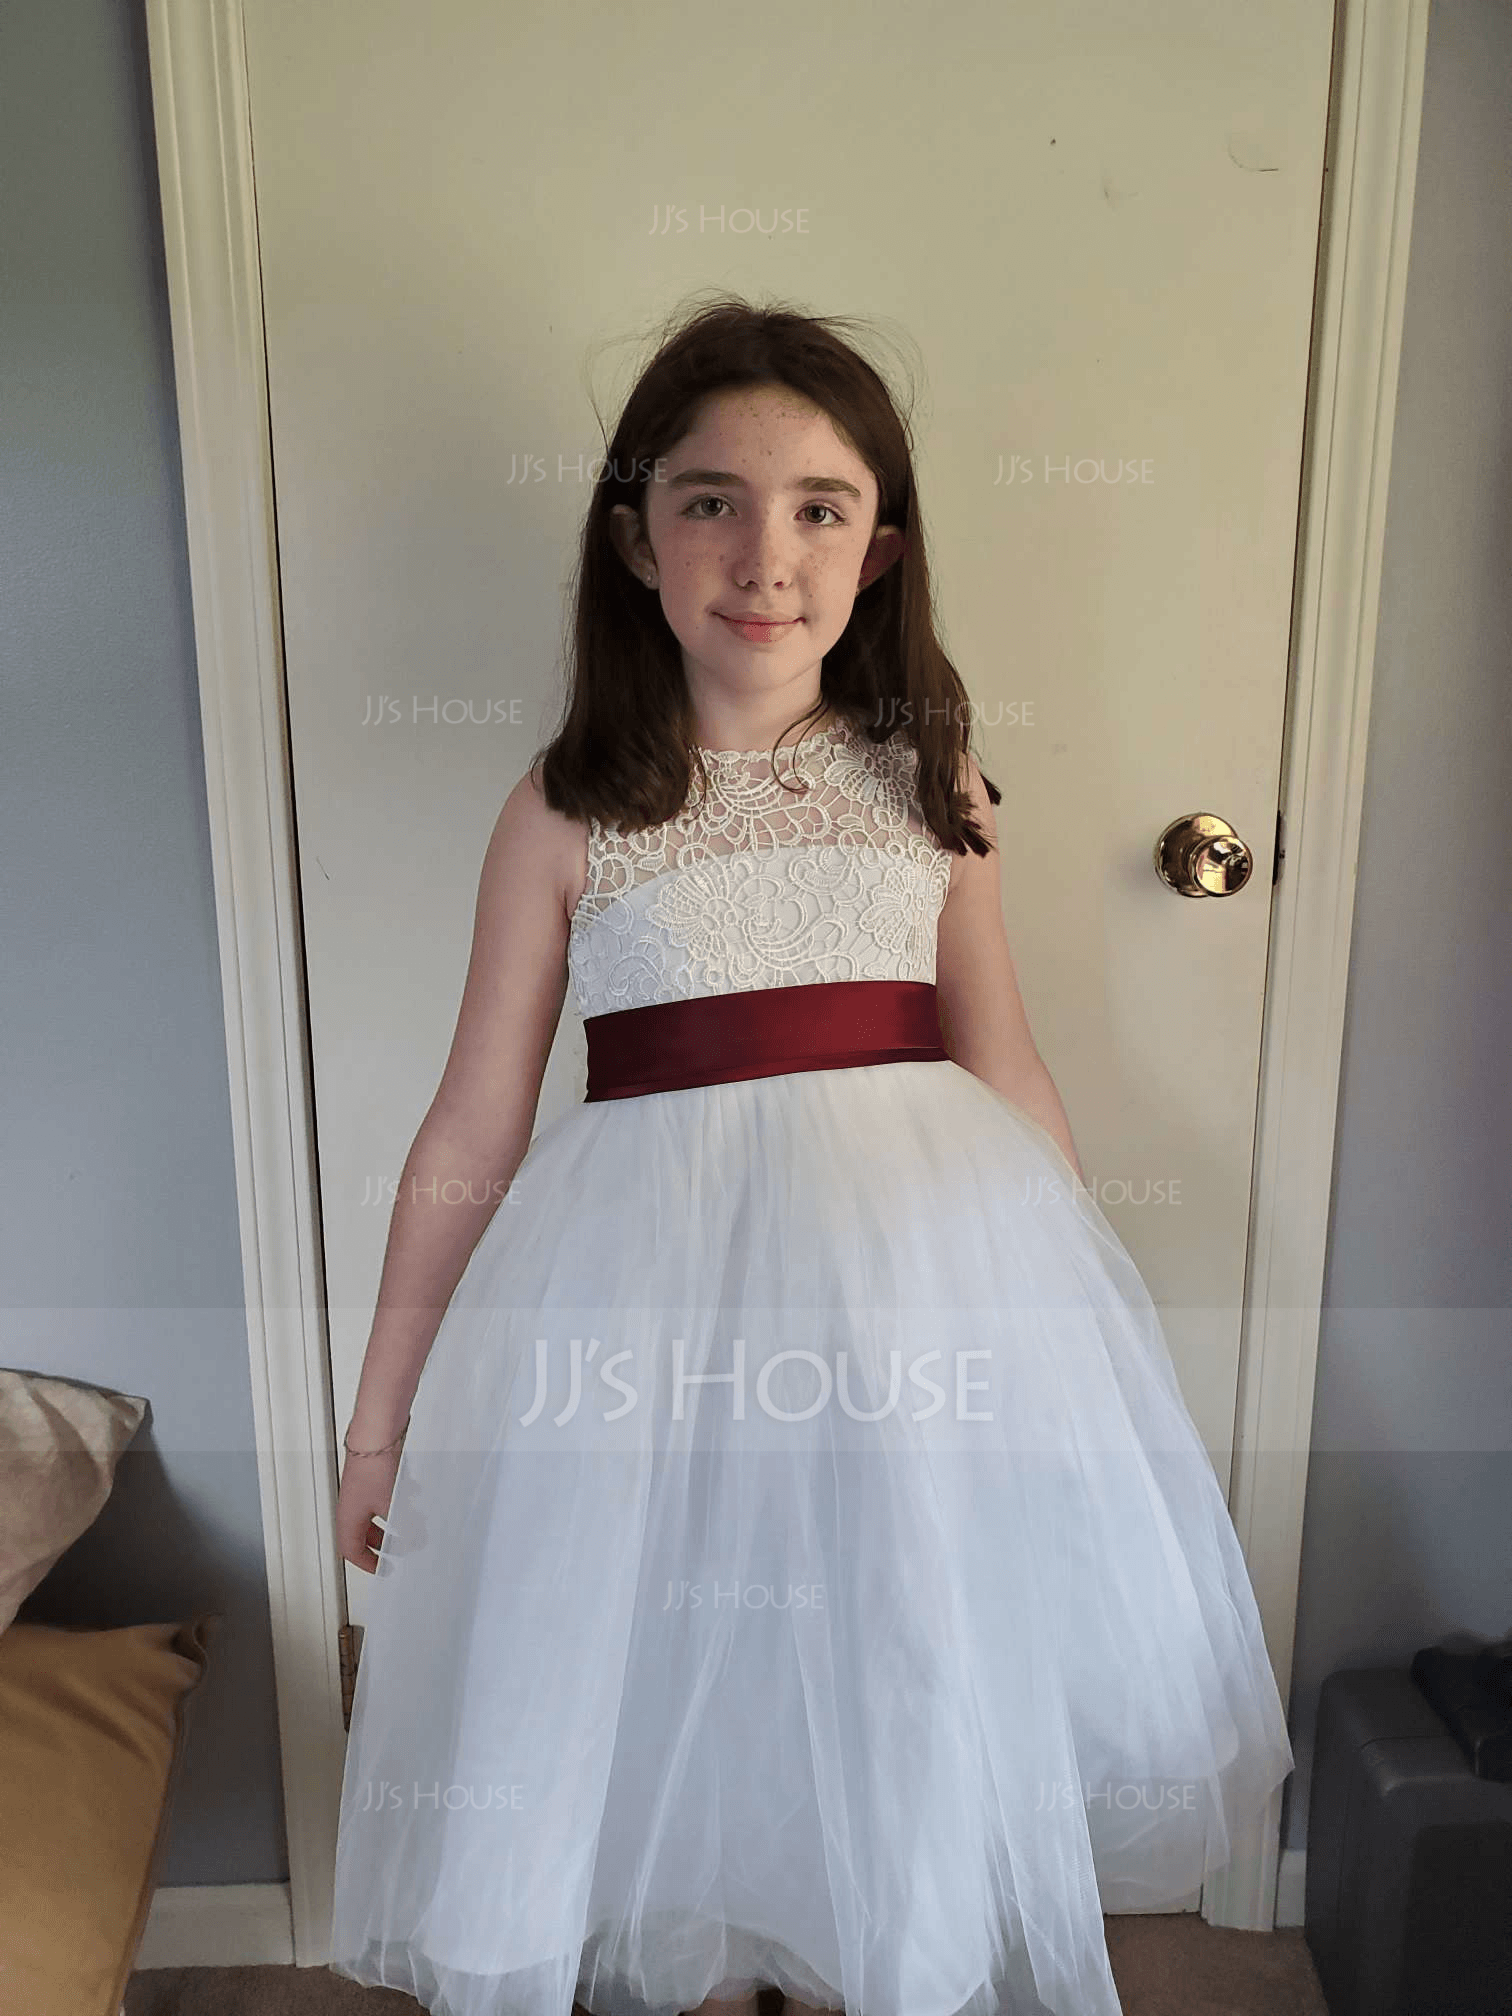 A-Line Scoop Neck Knee-Length Tulle Junior Bridesmaid Dress With Sash Bow(s)